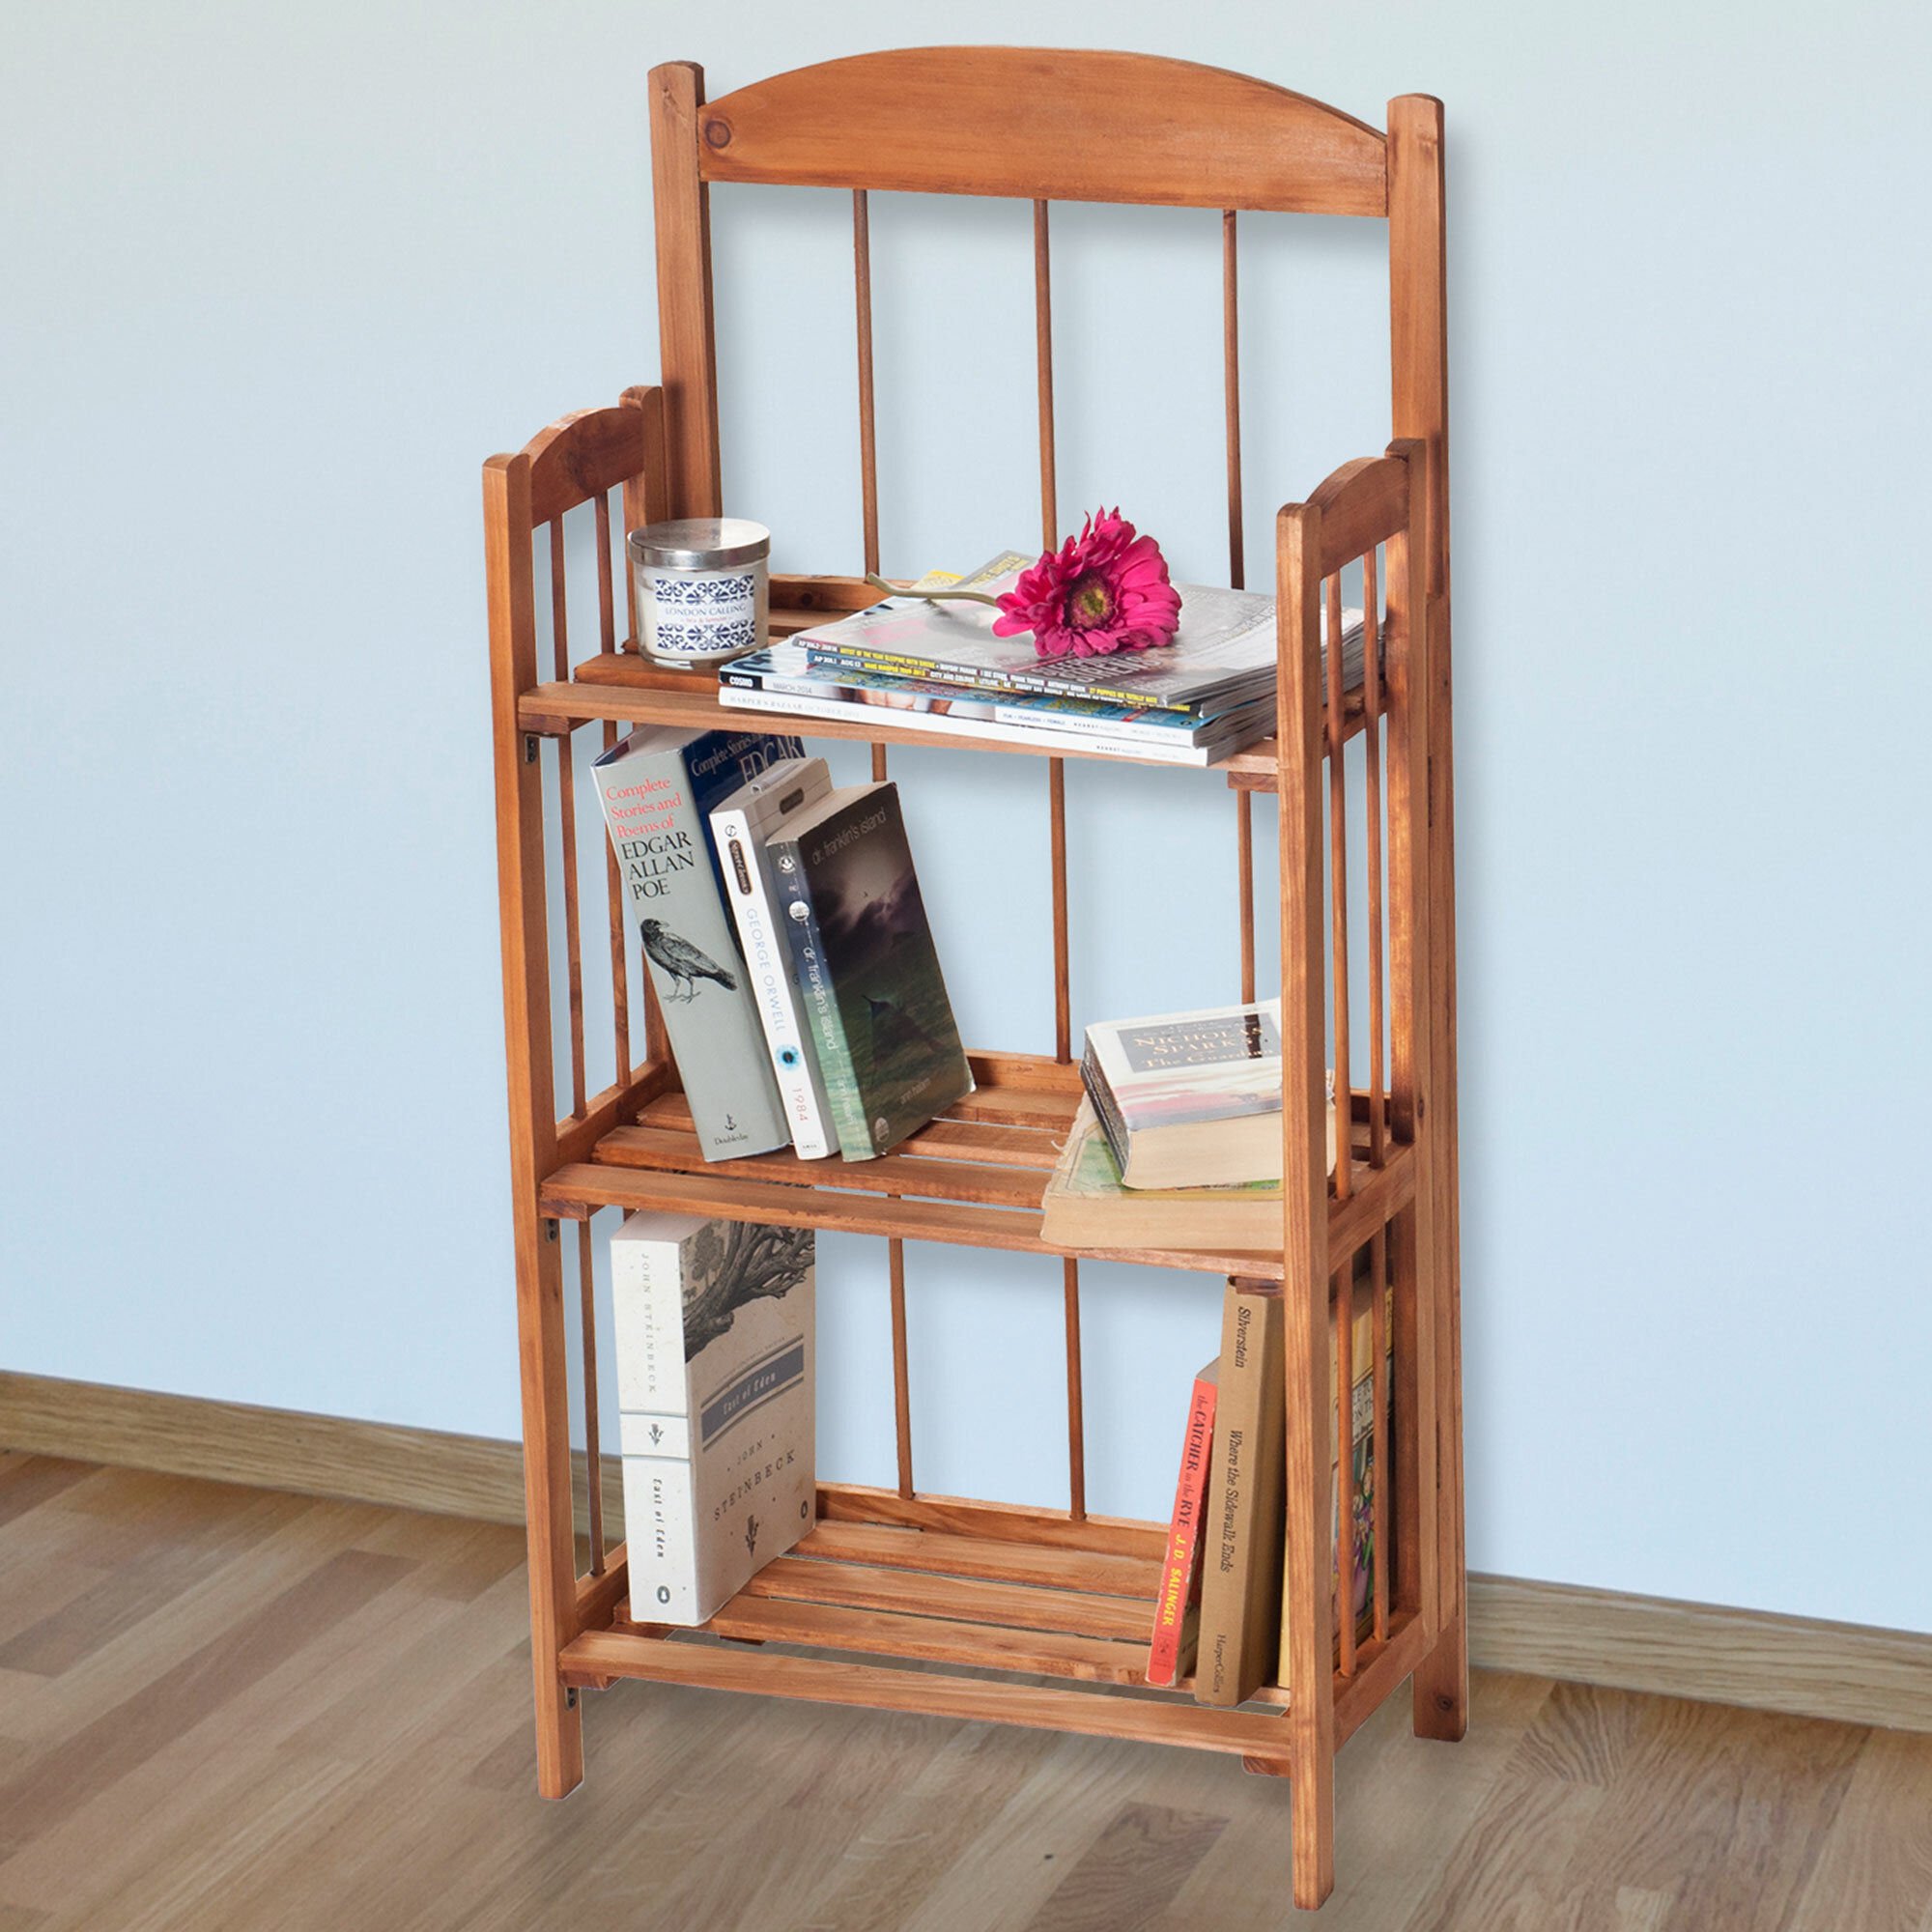 Home Shelving Light Brown 83-11-3 Folding Wood Display Rack for Home and Office Bookcase for Decoration and Organization by Lavish Home- 3 Shelf